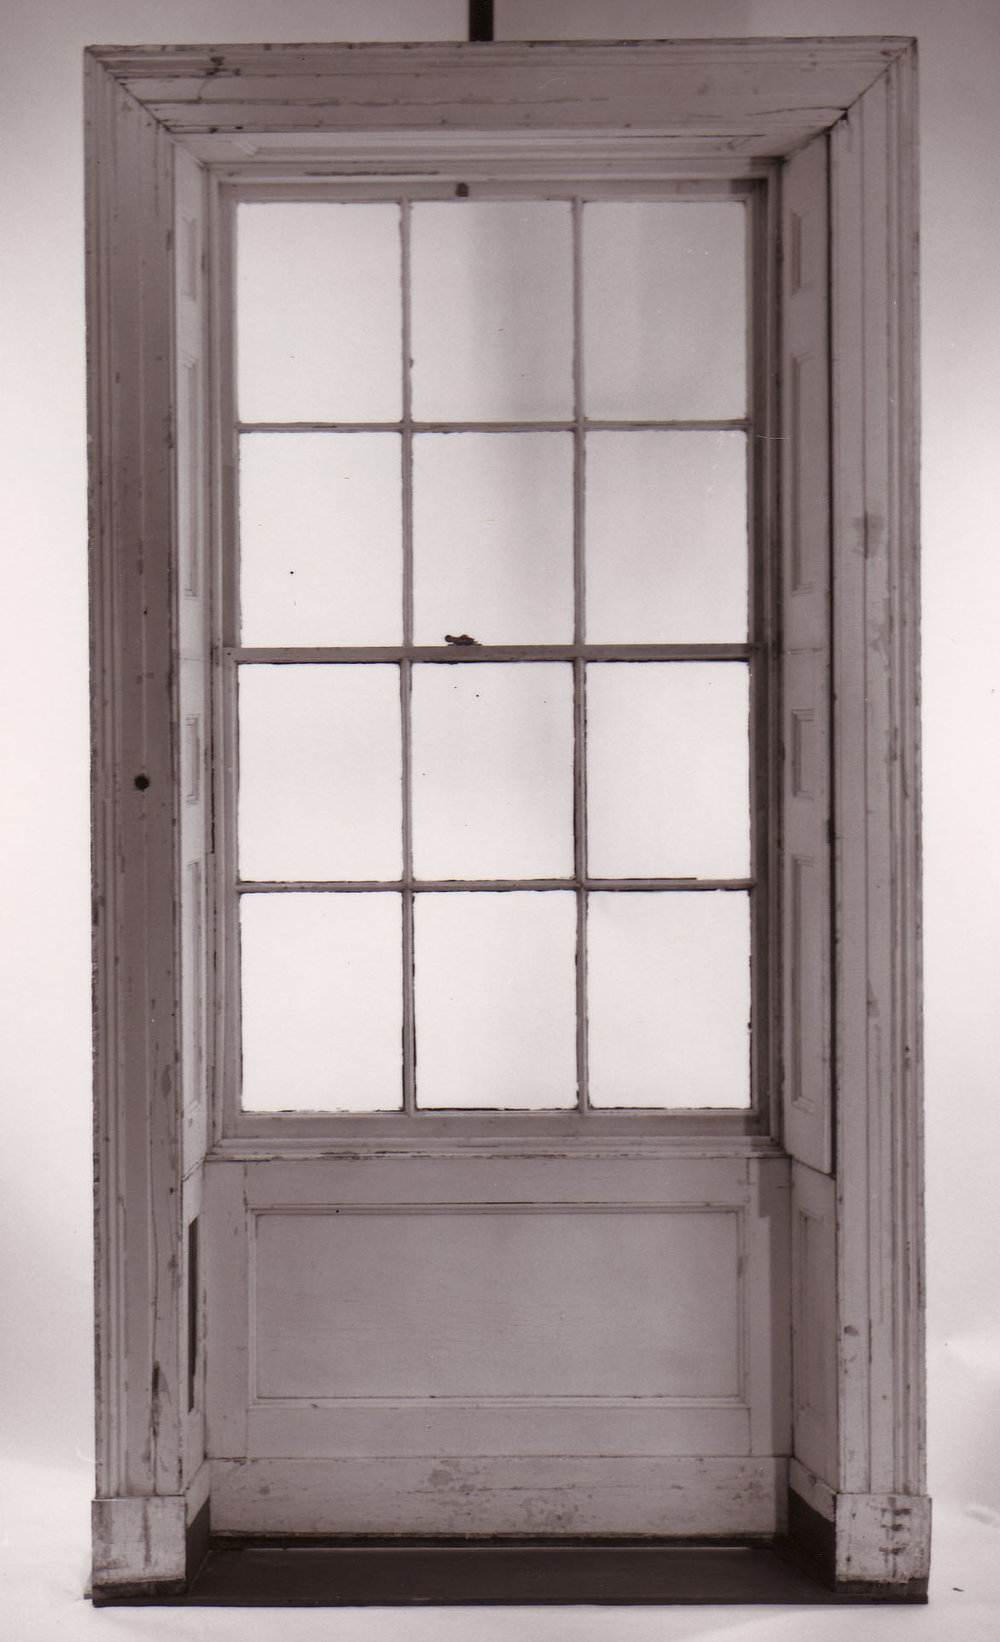 1820-concealed-interior-window-shutter